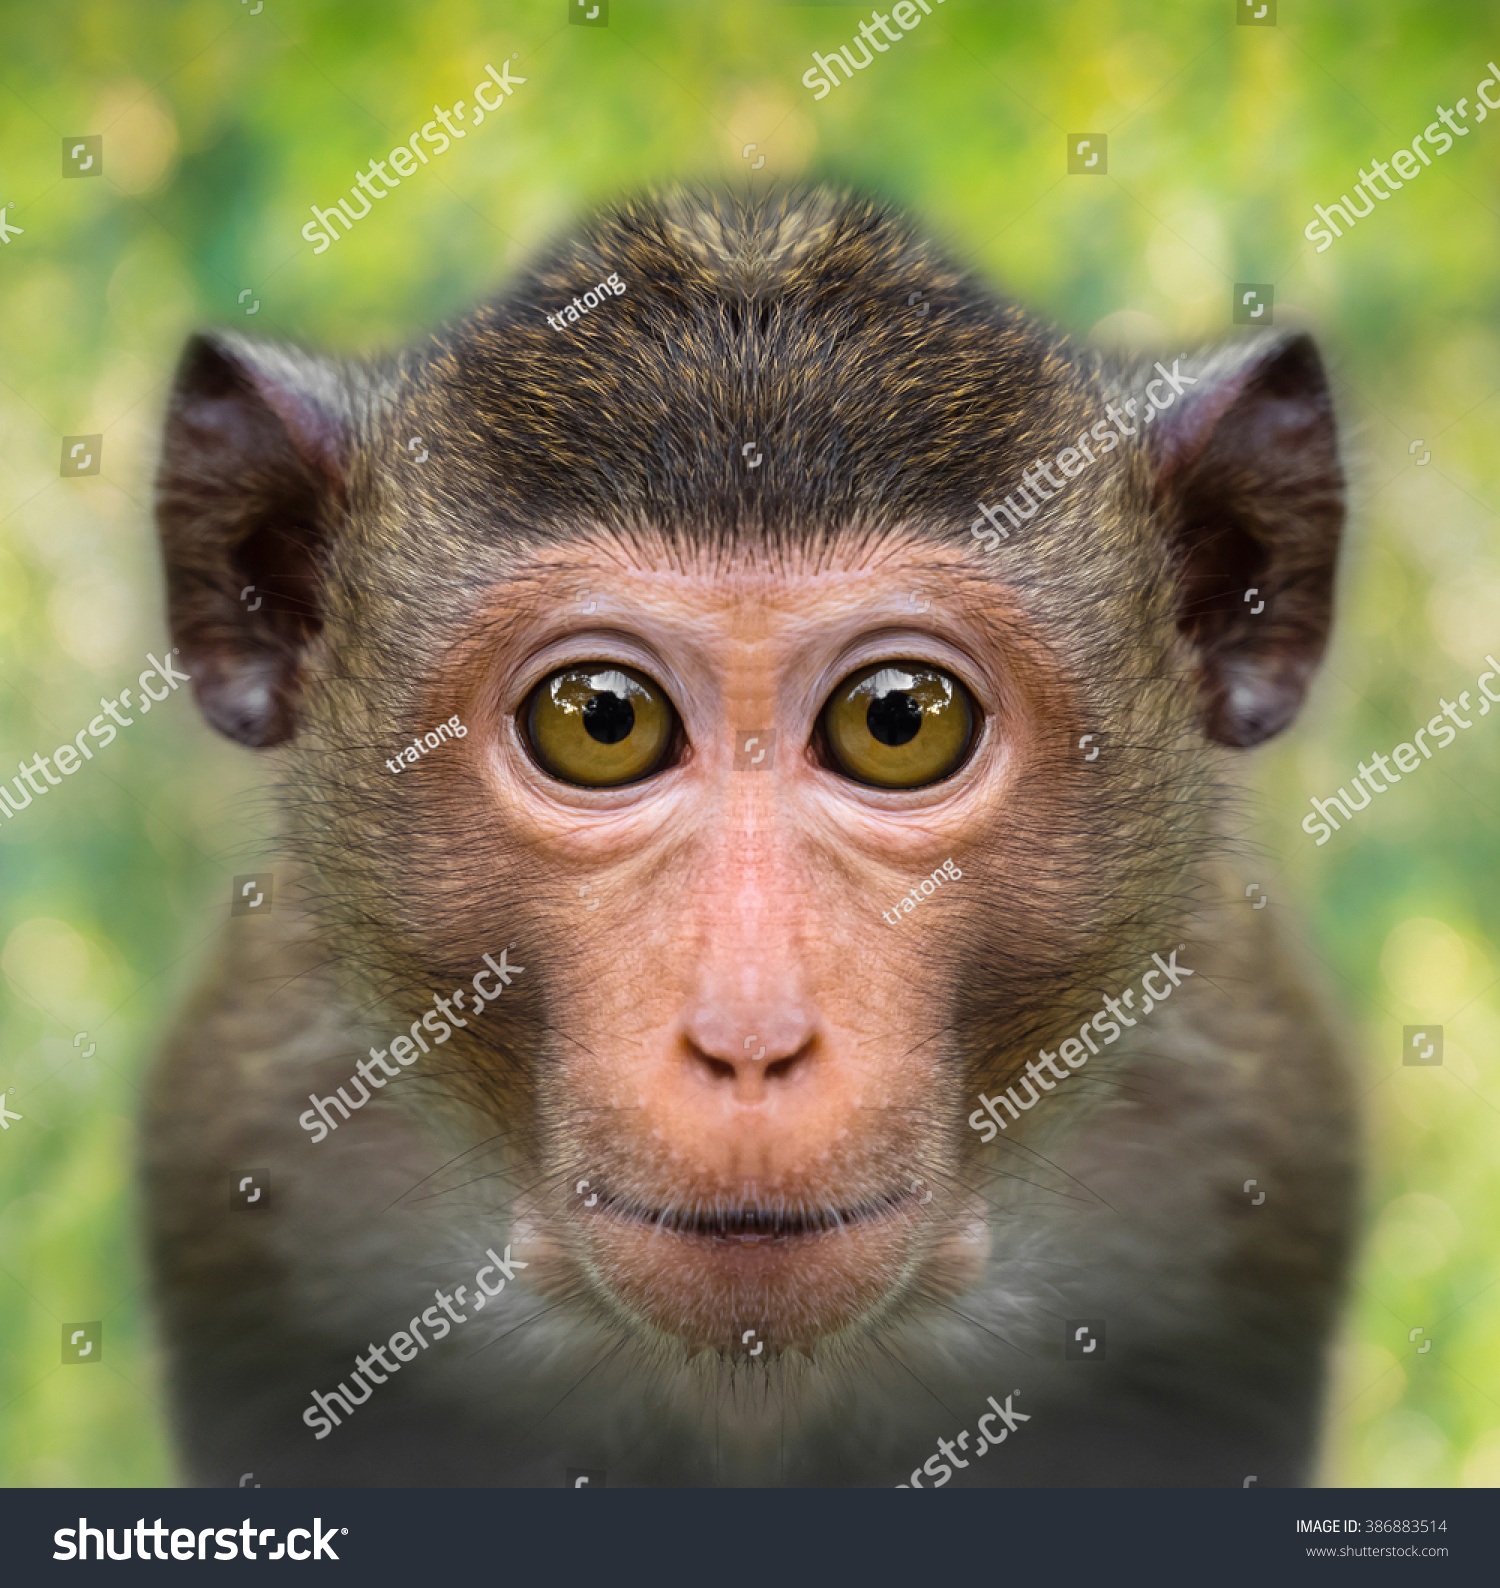 Funny Monkey Face Close Big Eyes Stock Photo (100% Legal Protection ...